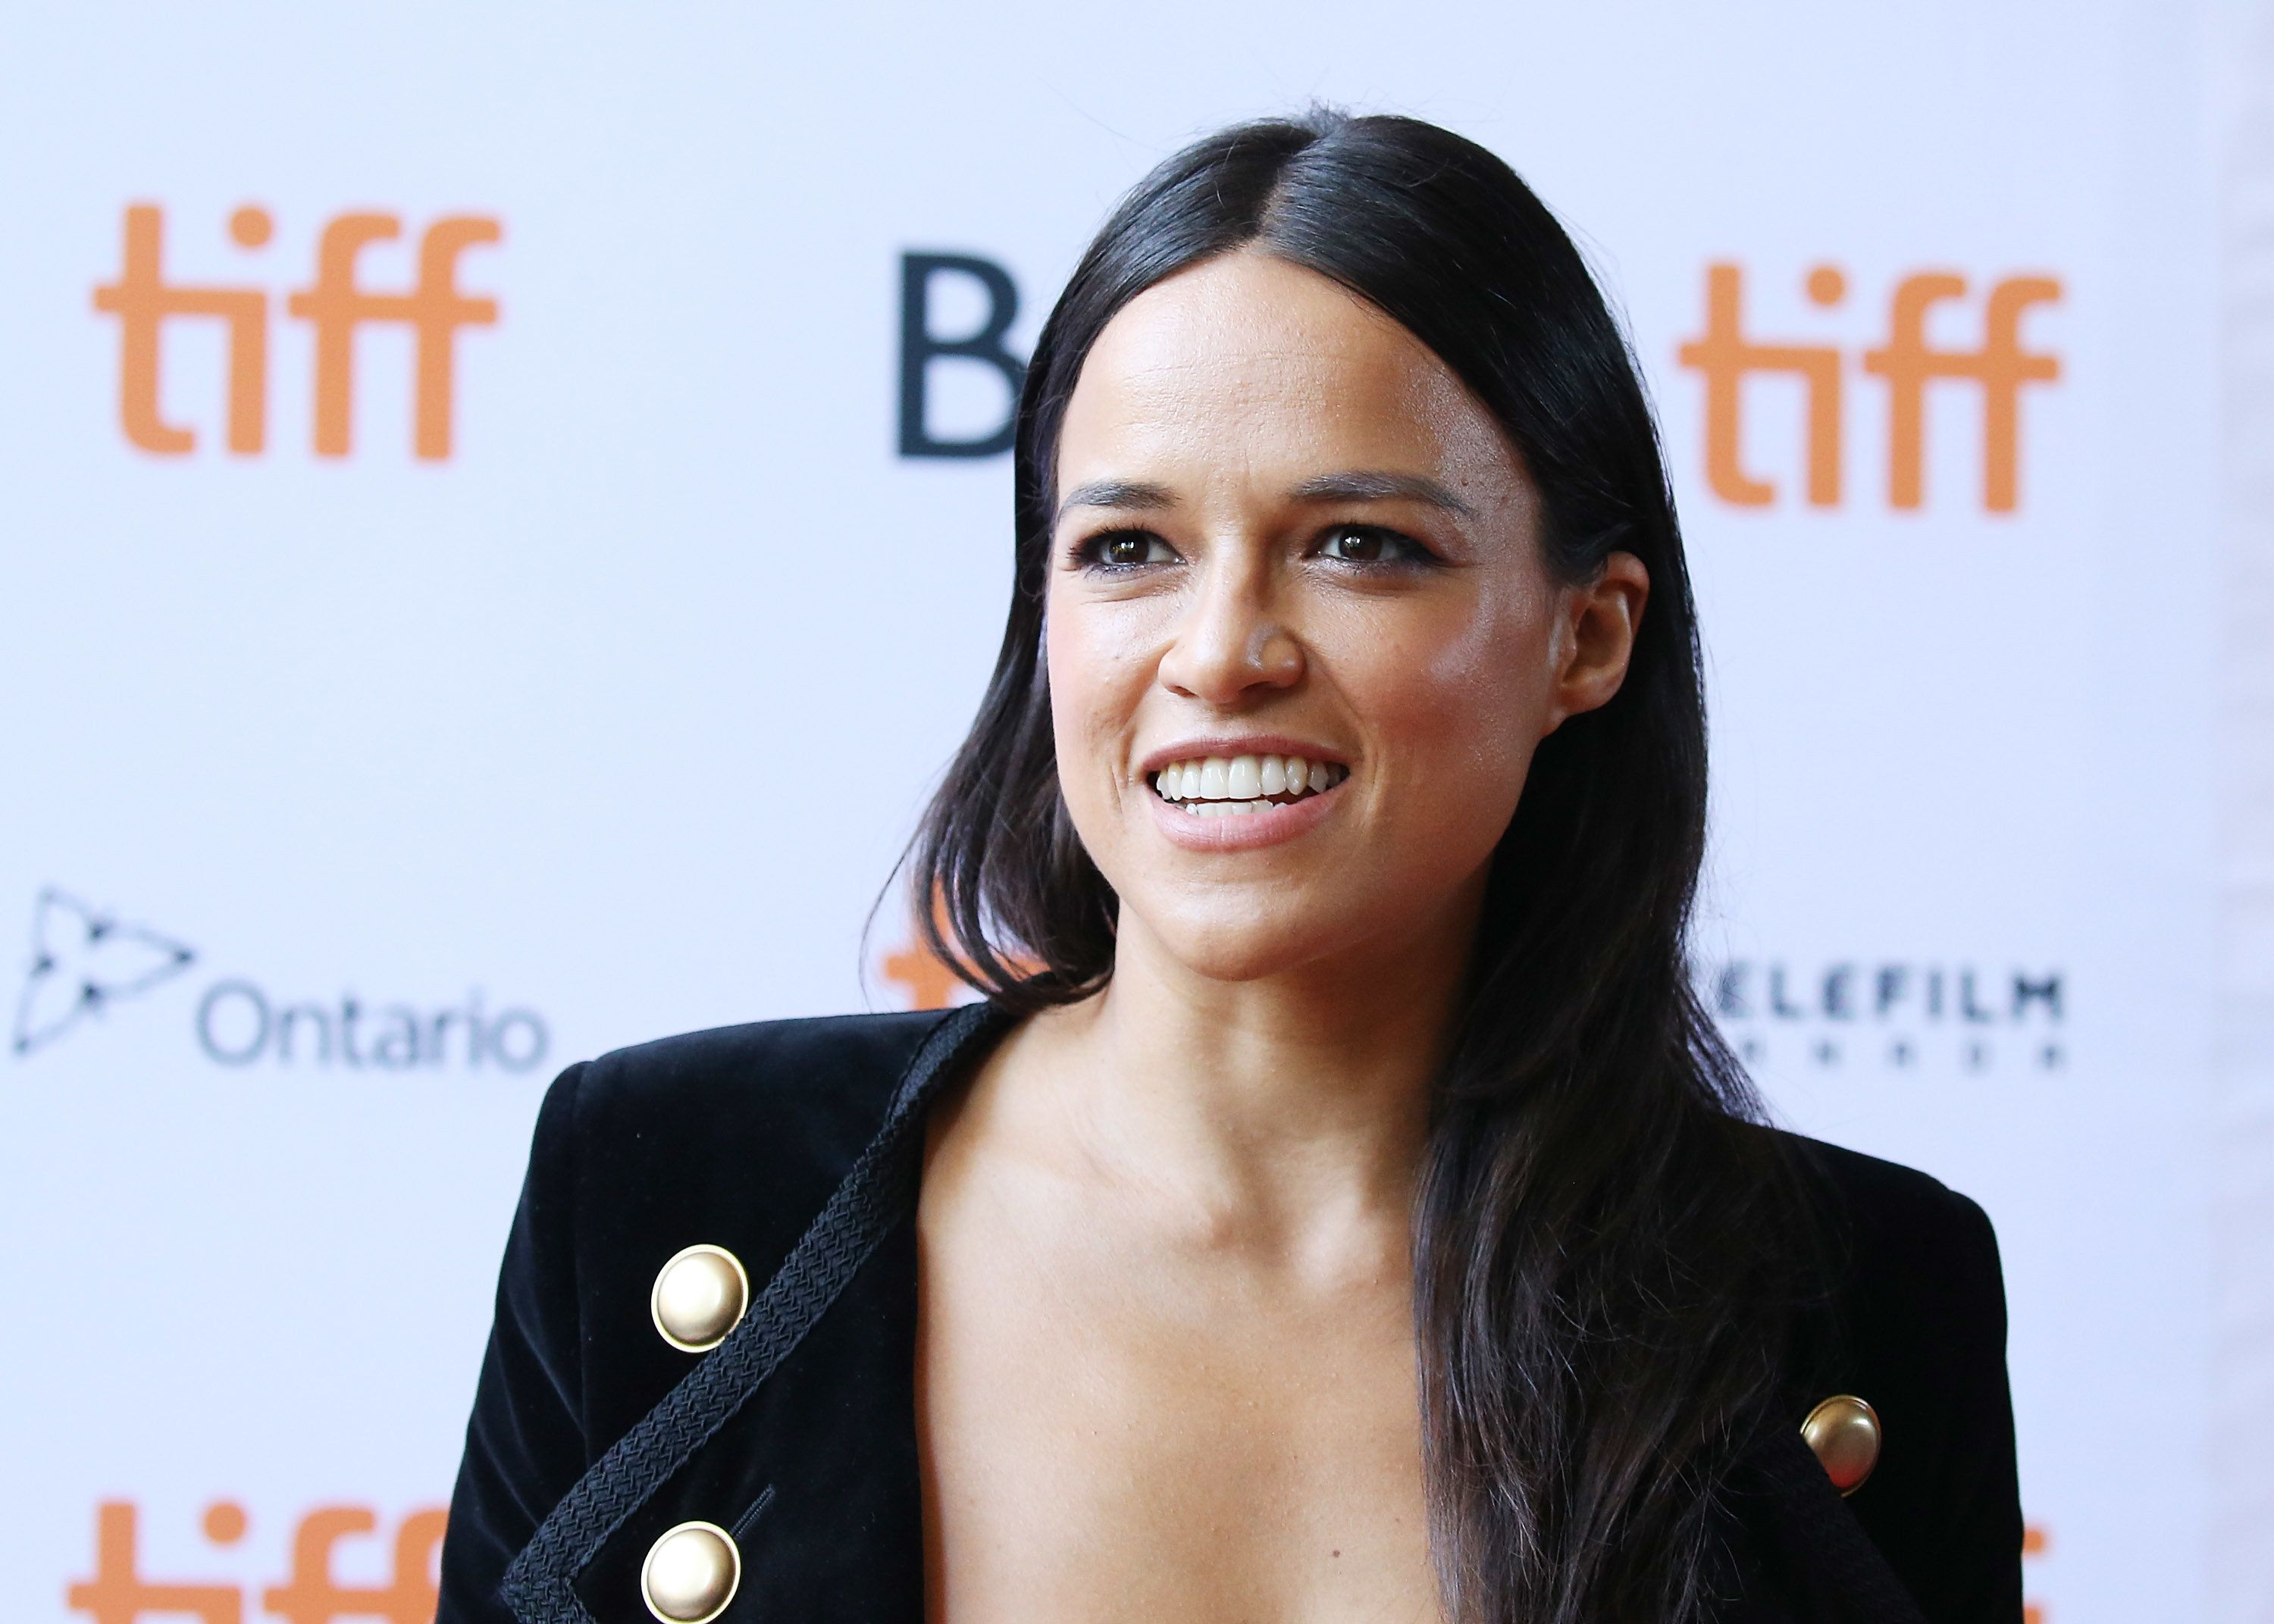 TORONTO, ON - SEPTEMBER 14:  Michelle Rodriguez arrives at the 2016 Toronto International Film Festival - '(re) ASSIGNMENT' premiere held at Ryerson Theatre on September 14, 2016 in Toronto, Canada.  (Photo by Michael Tran/Getty Images)